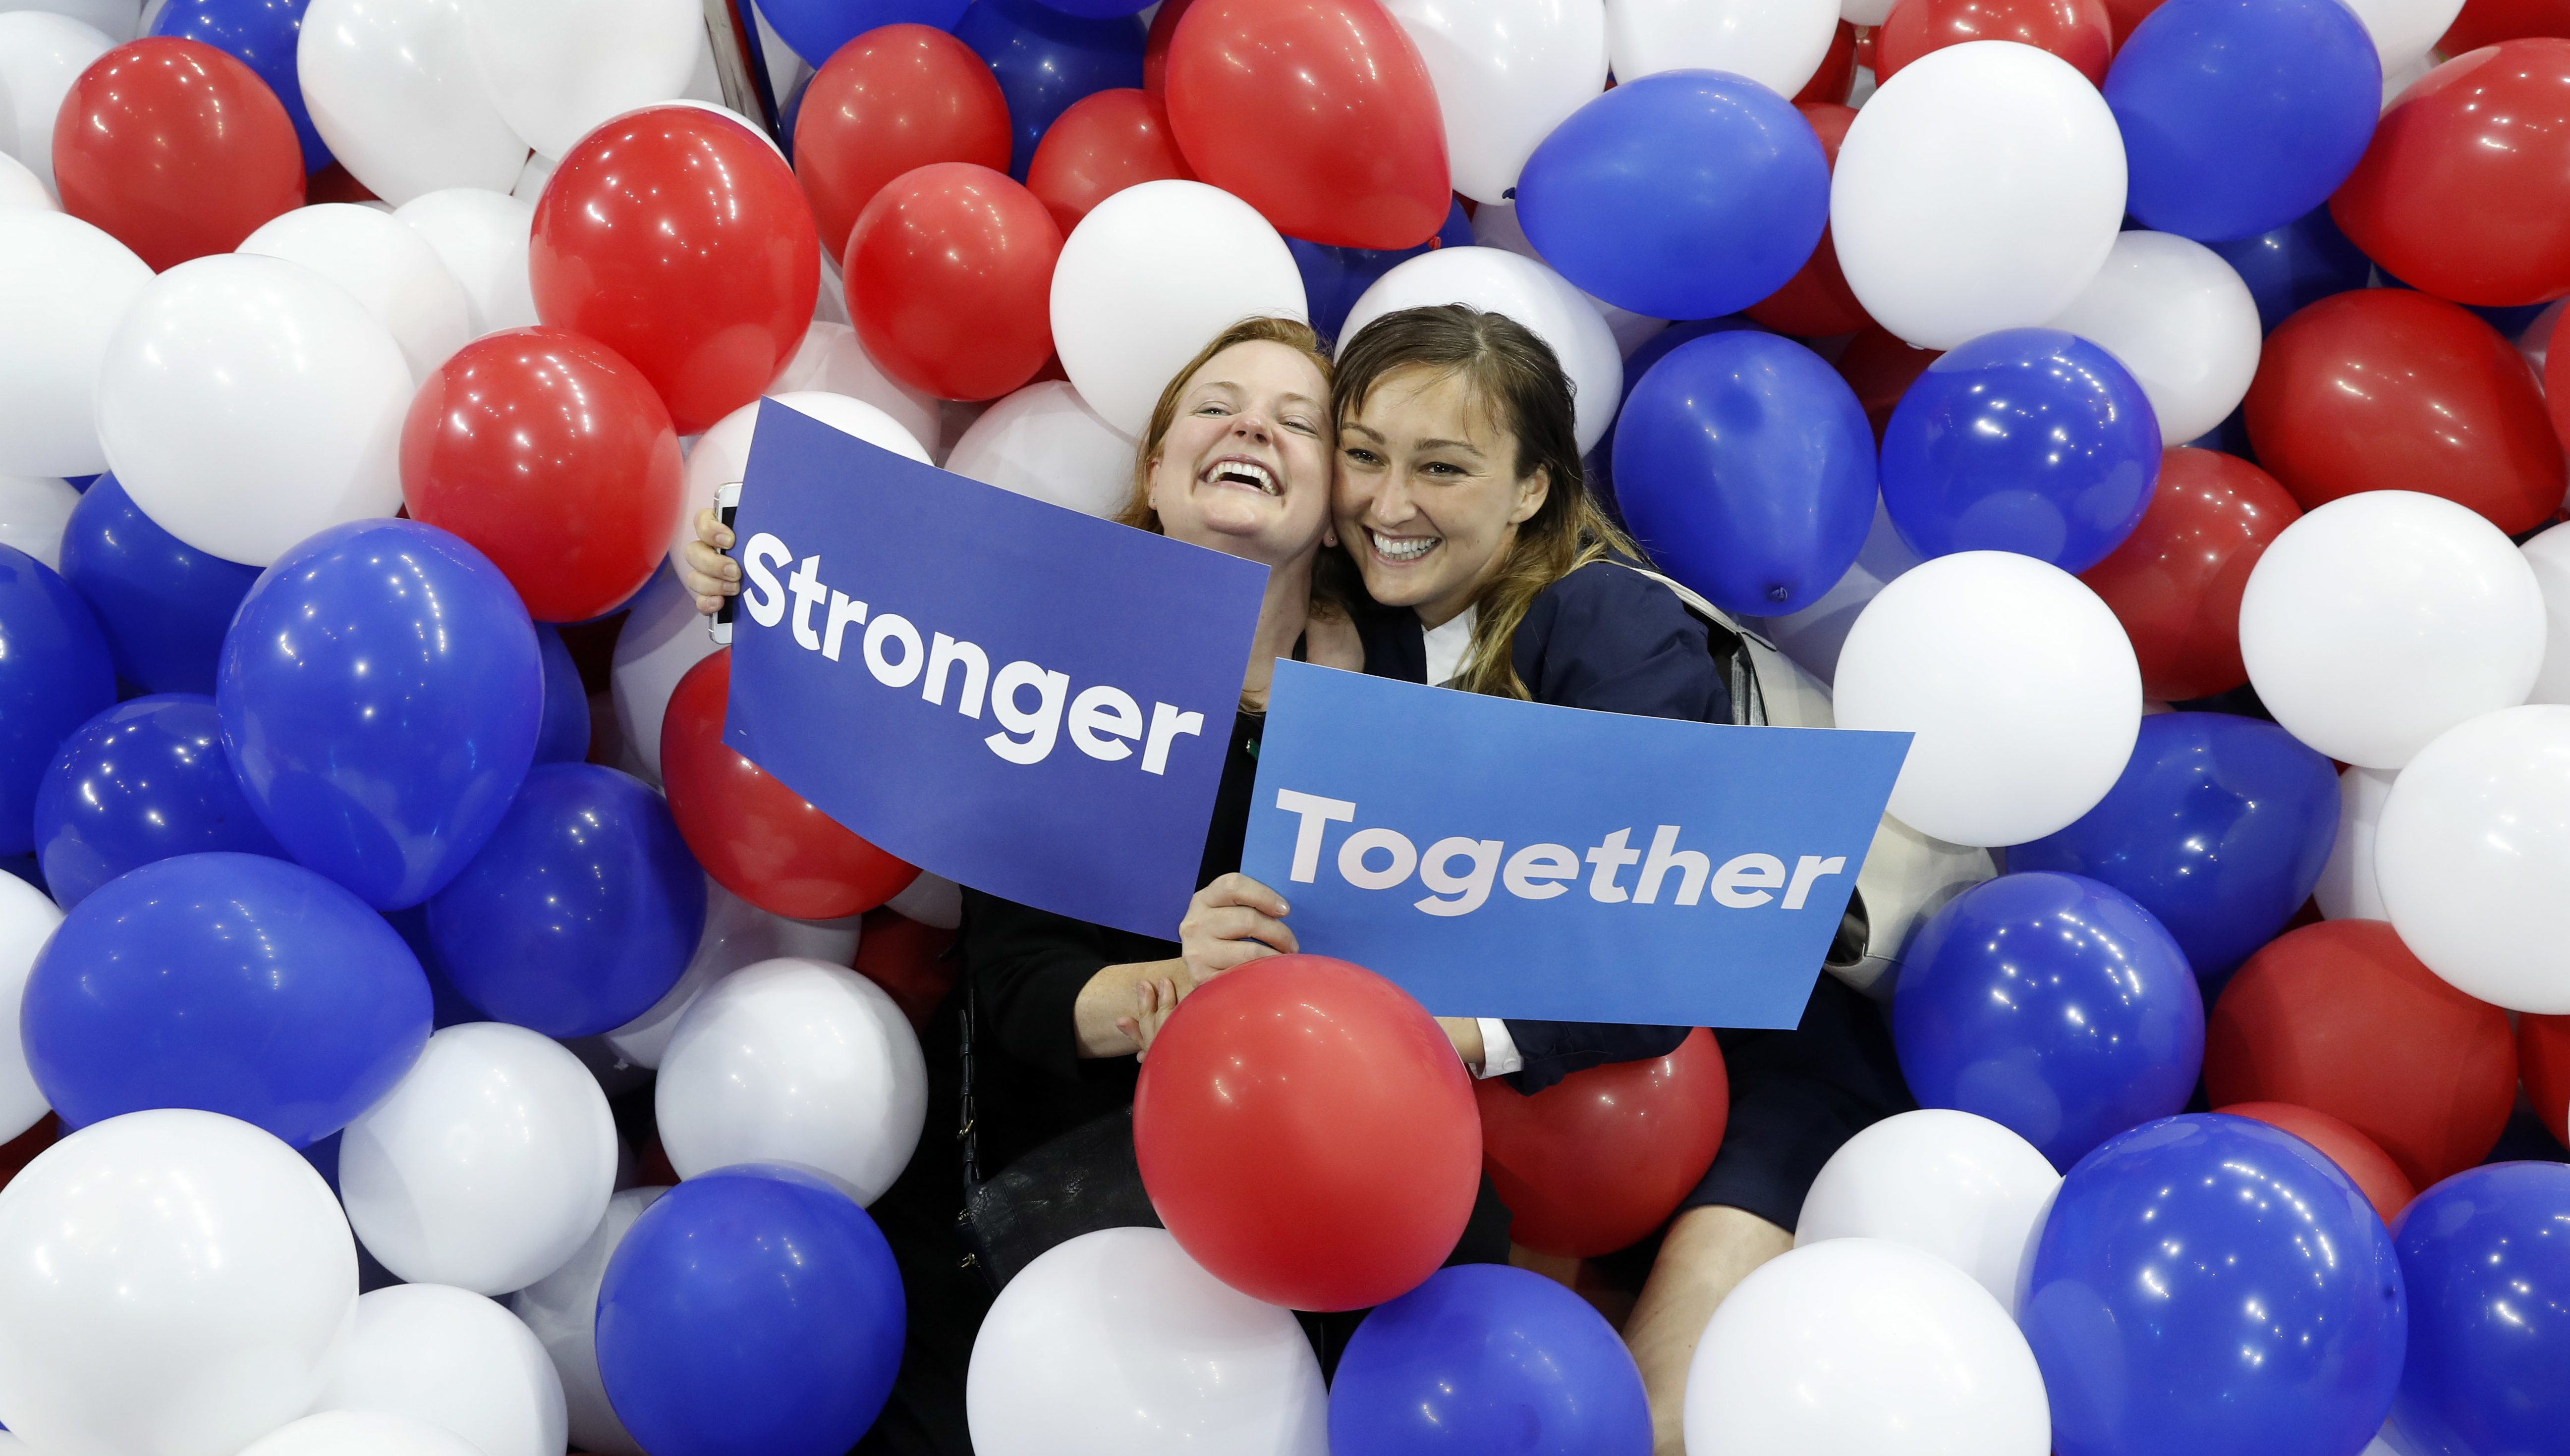 Campaign staffers for Democratic presidential nominee Hillary Clinton pose in balloons on the floor after the Democratic National Convention in Philadelphia, Thursday, July 28, 2016.